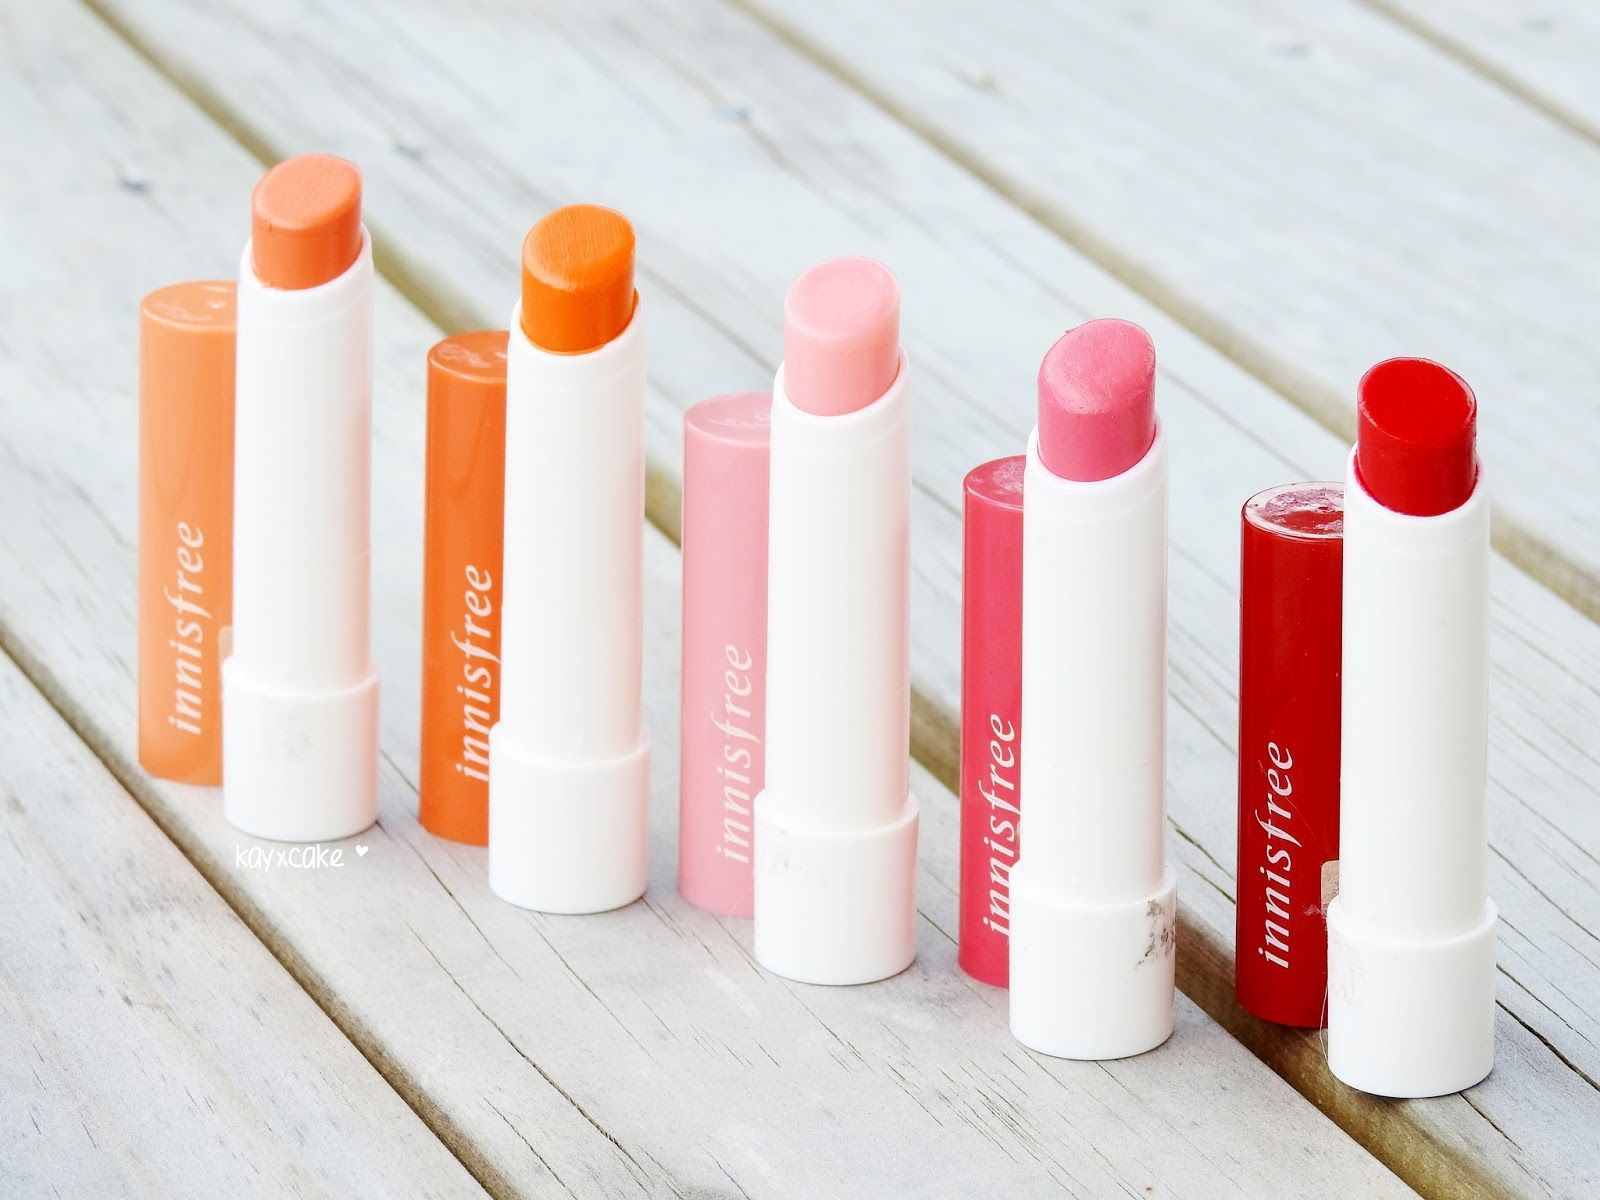 Innisfree Eco Flower Tint Balm All 5 Colors Swatches Lip Balm